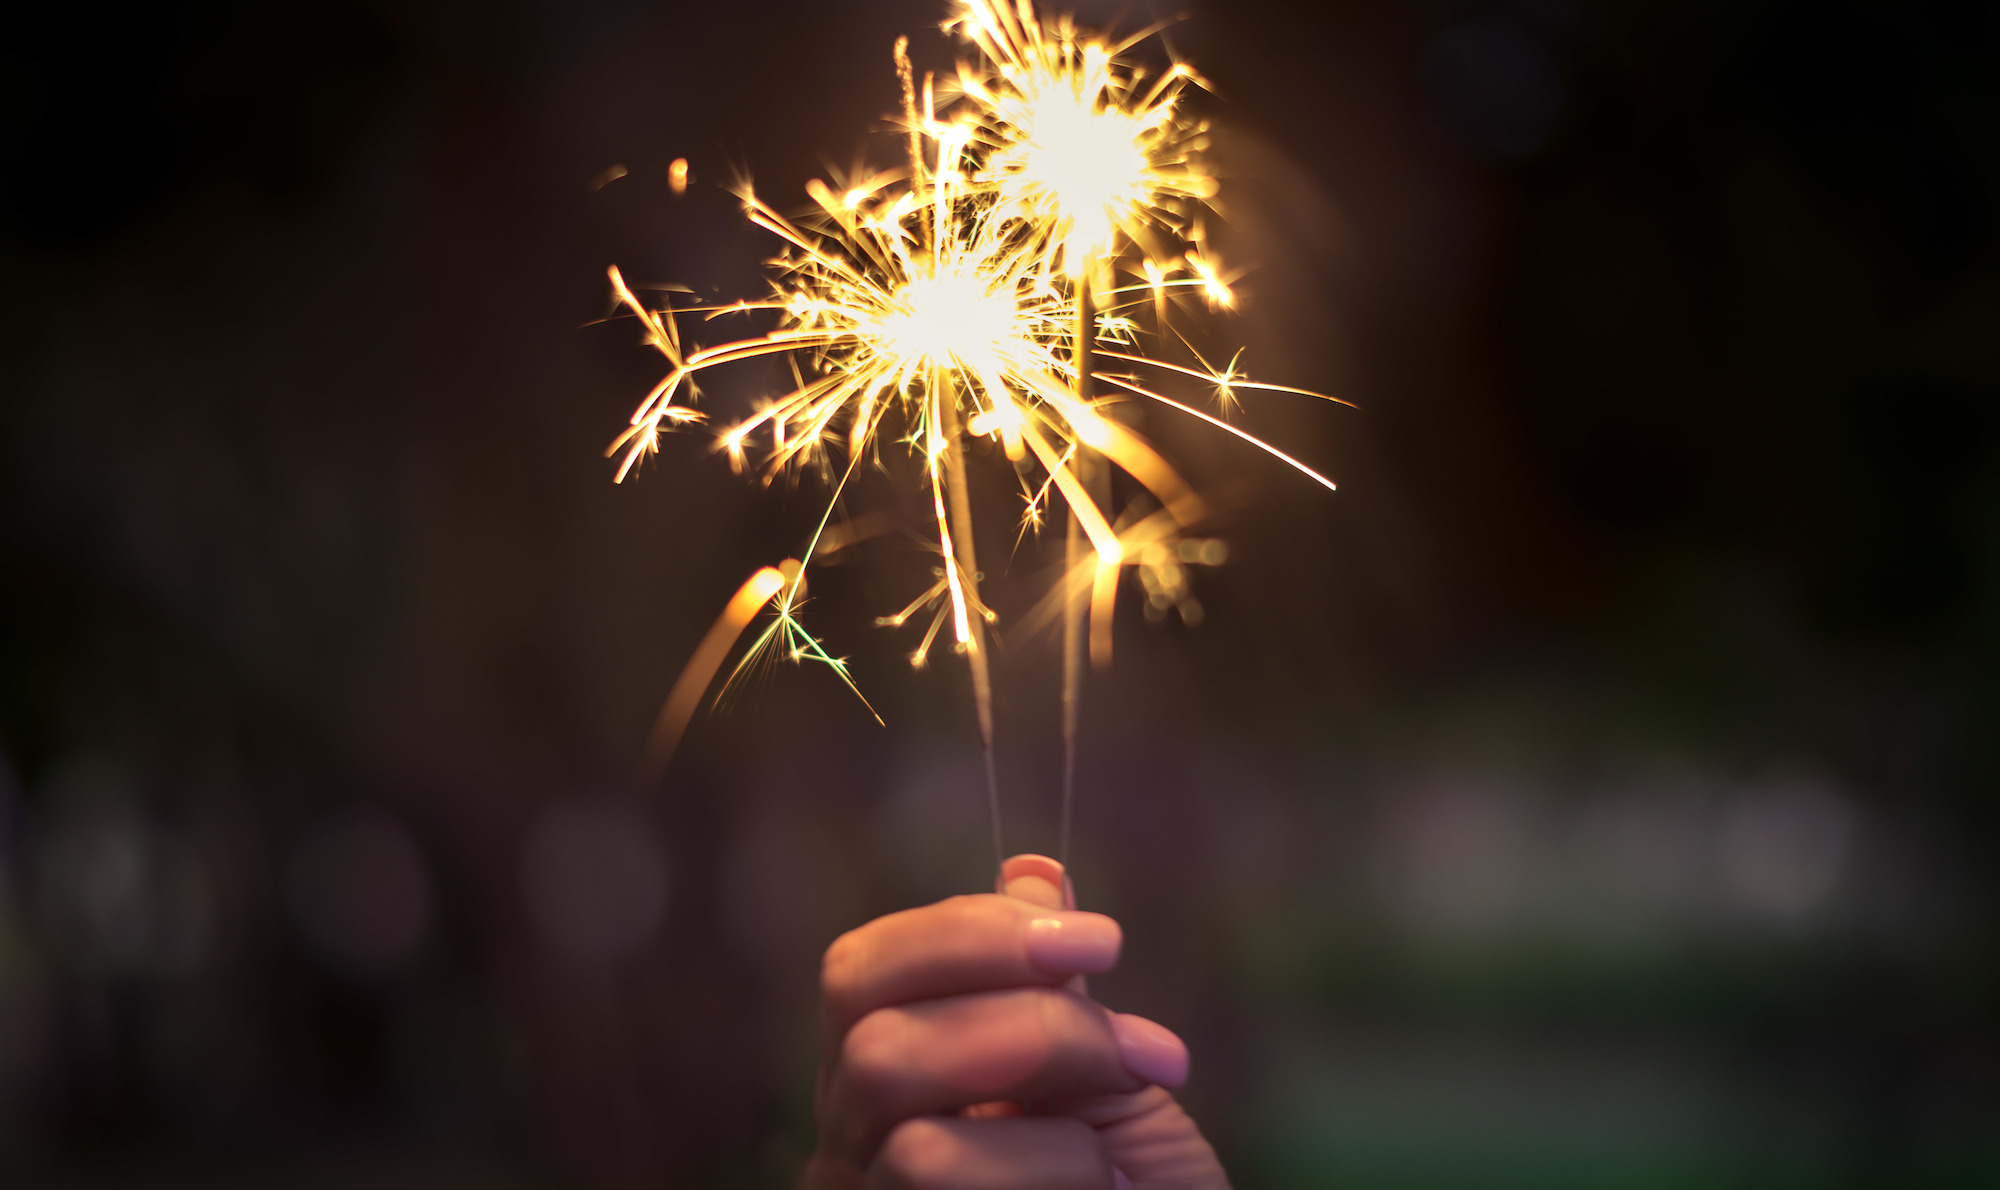 Members of The Daily Campus Life section share their New Year's Resolutions. (John Paul Tyrone Fernandez/Creative Commons)